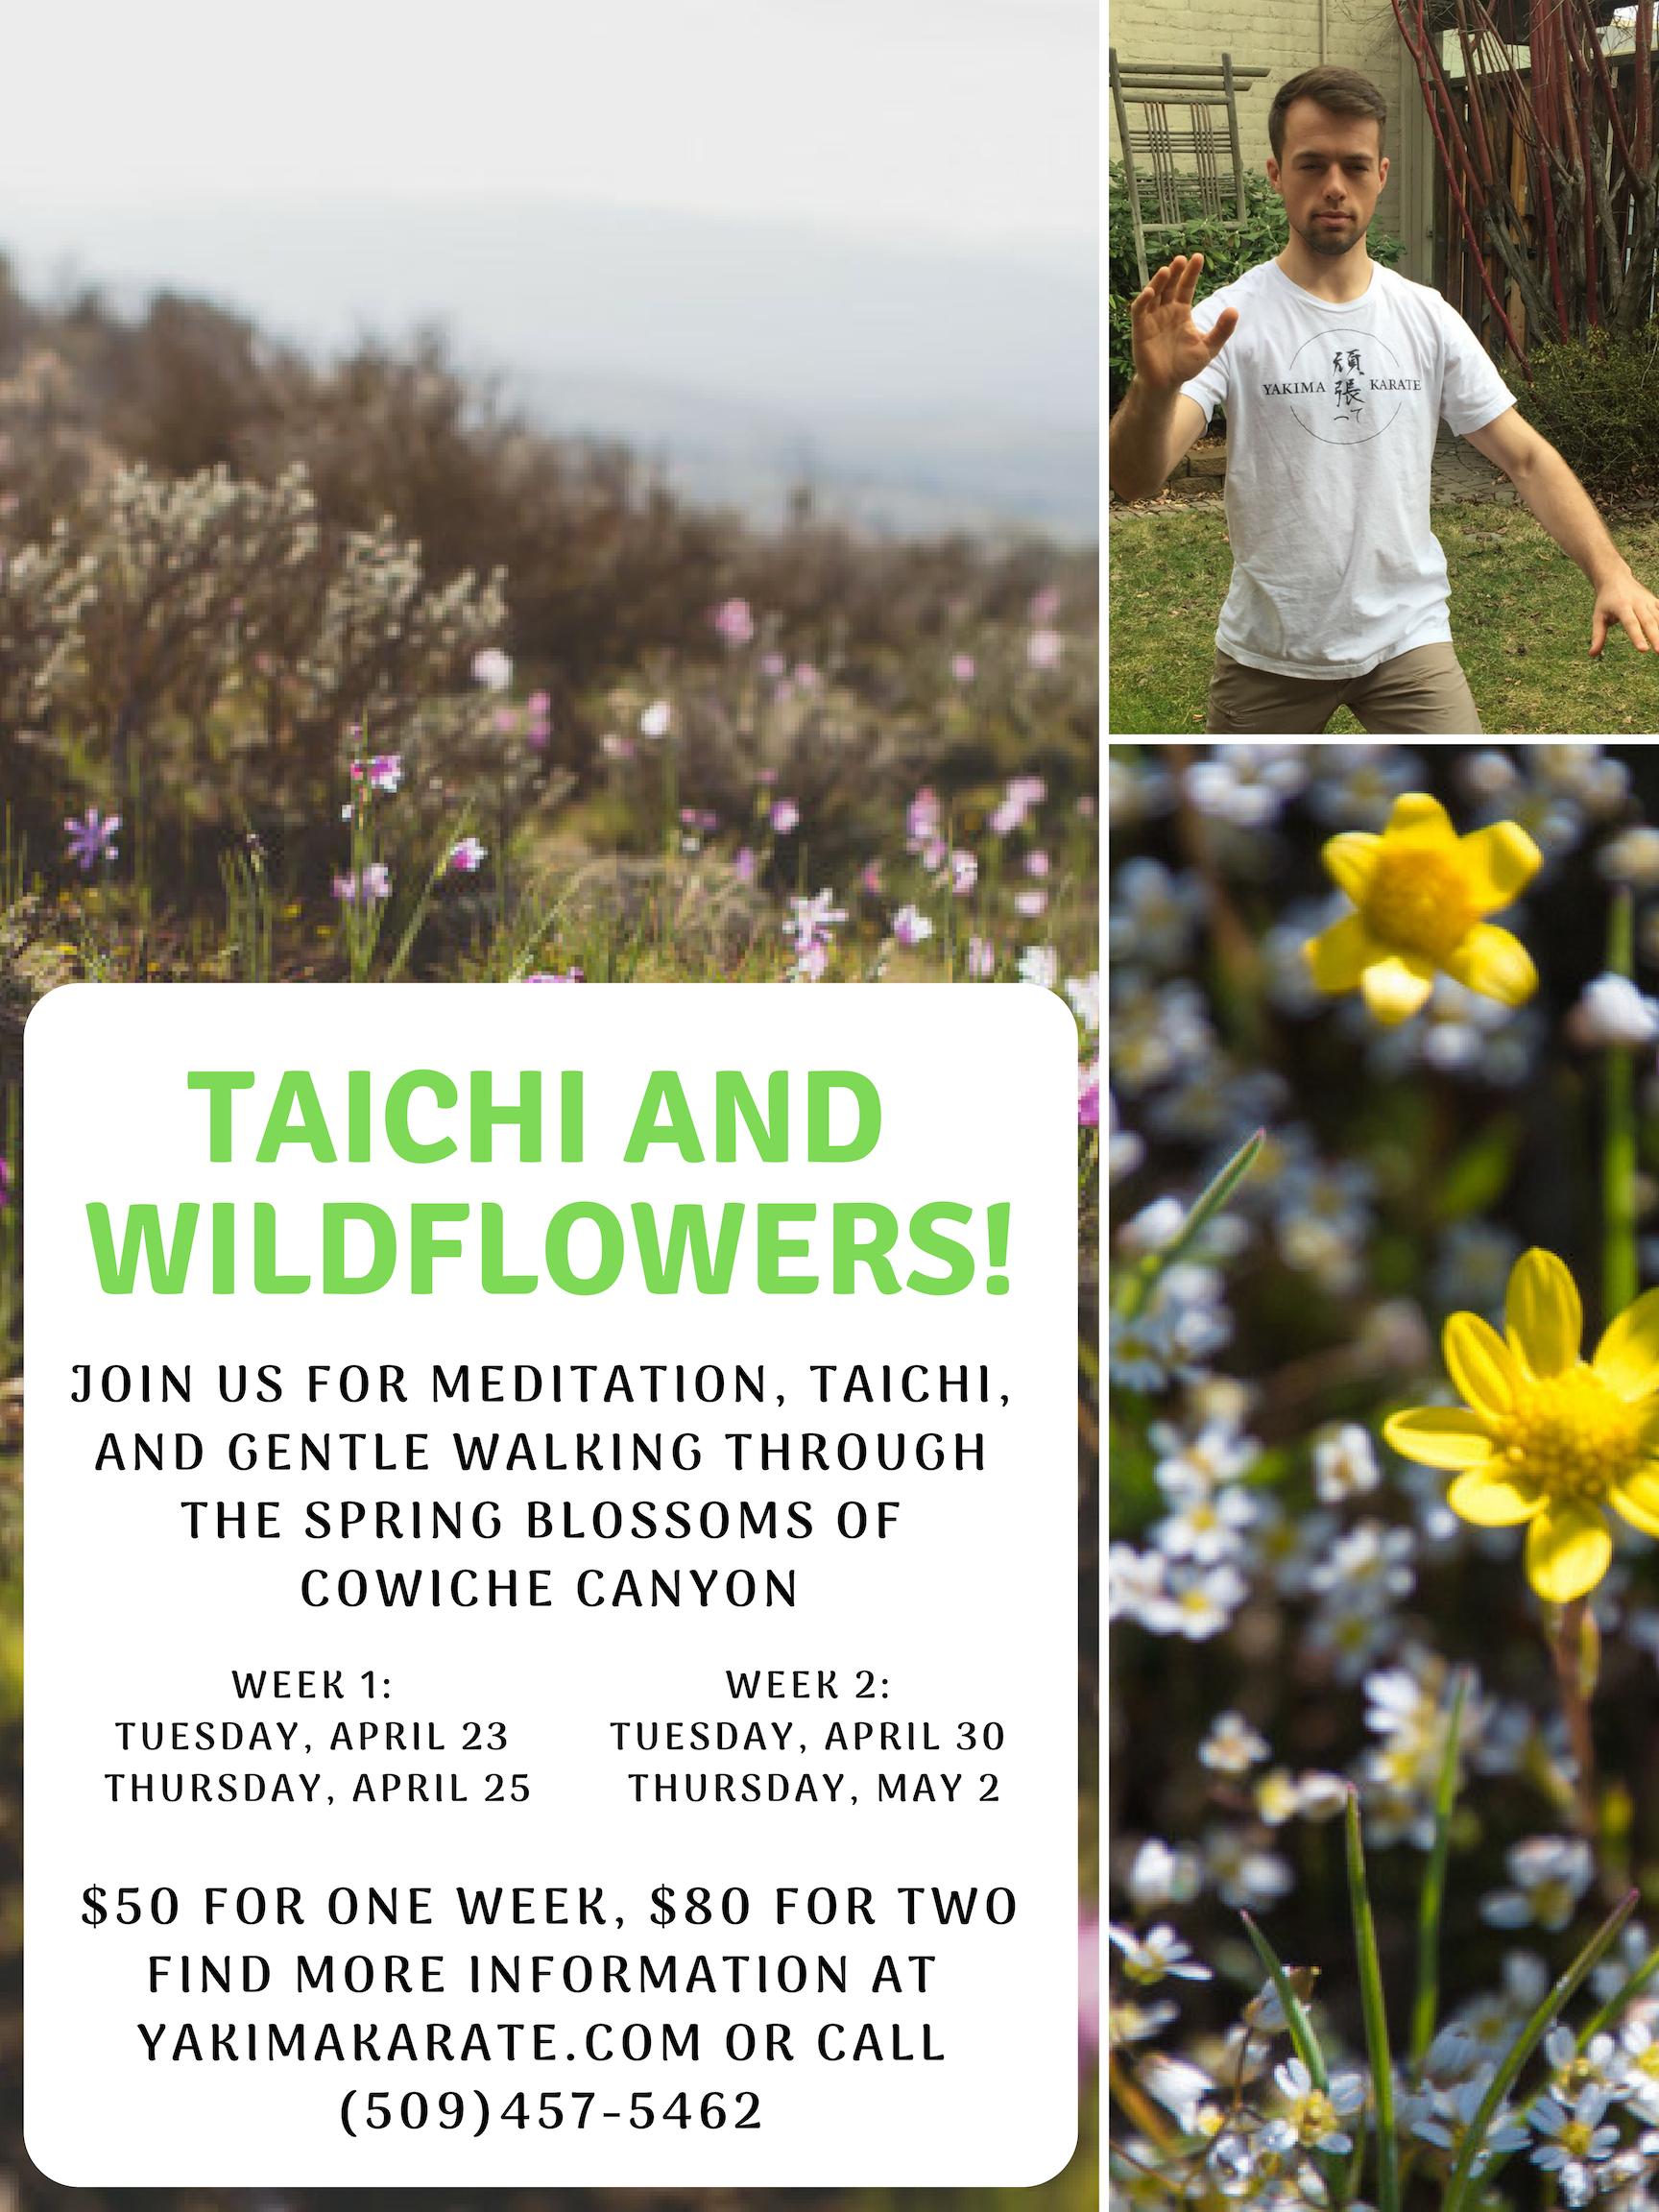 Taichi and Wildflowers.jpg